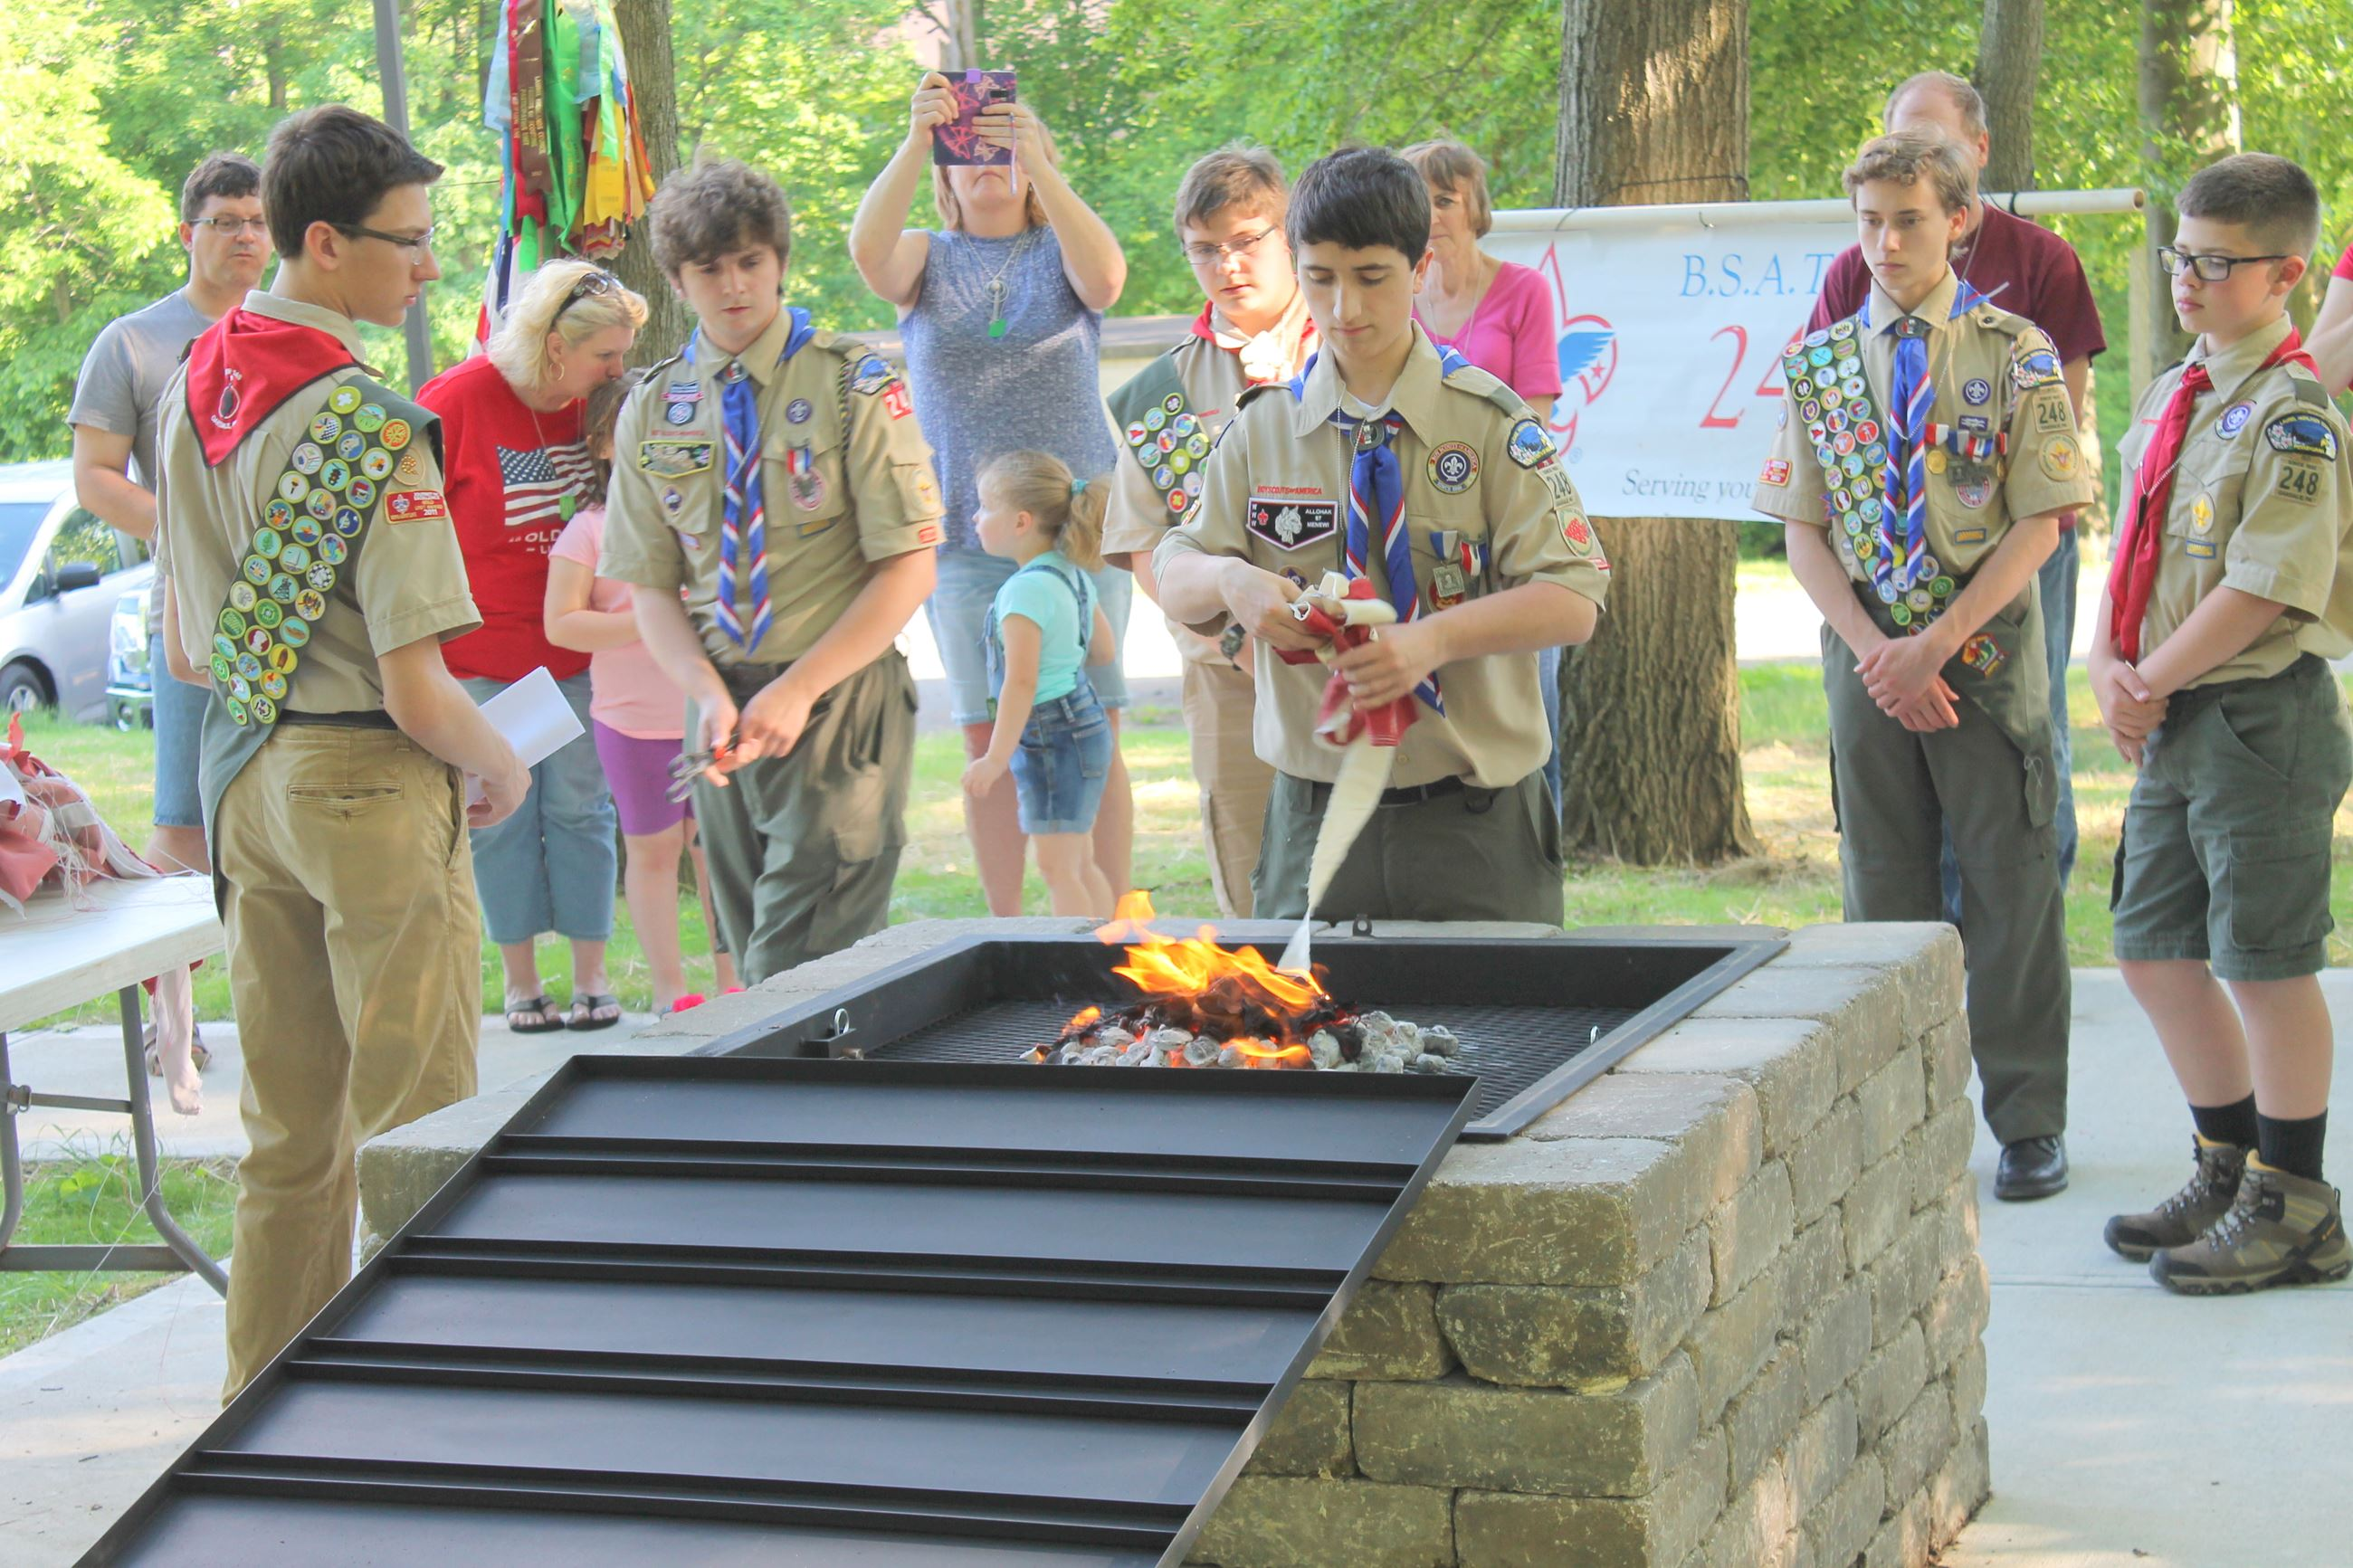 Scout places flag in fire